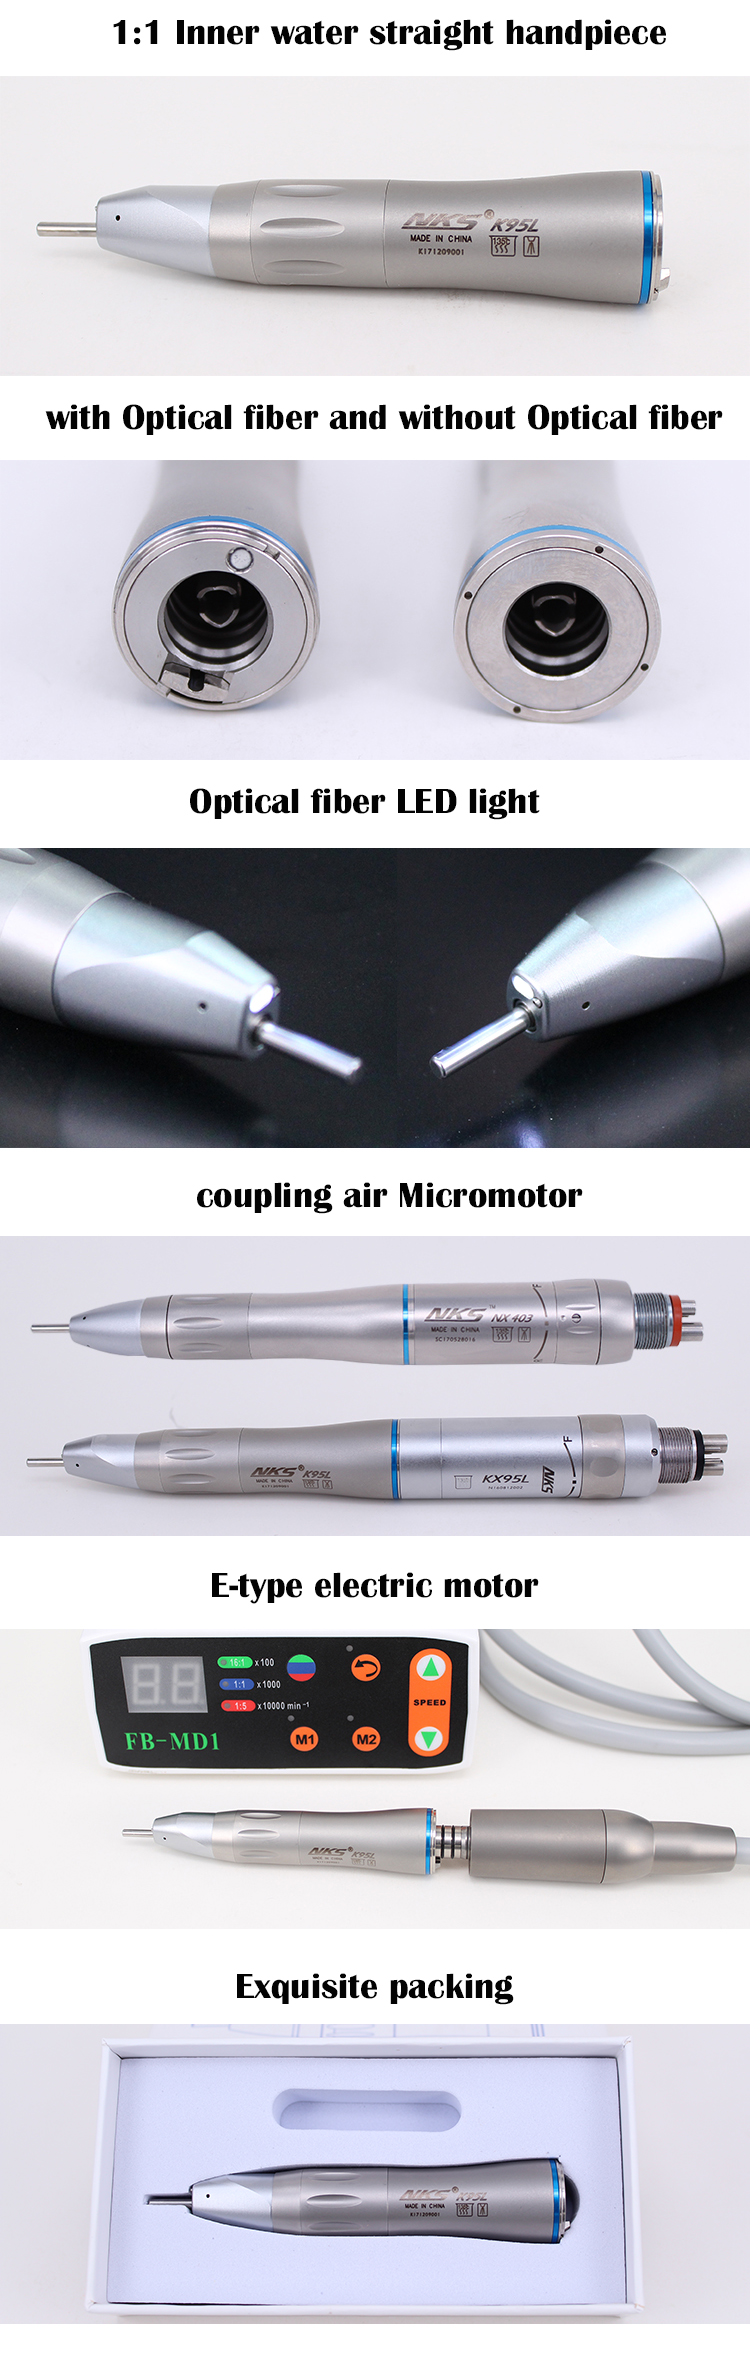 LED Optical fiber inner water straight surgical dental implant low speed dental handpiece